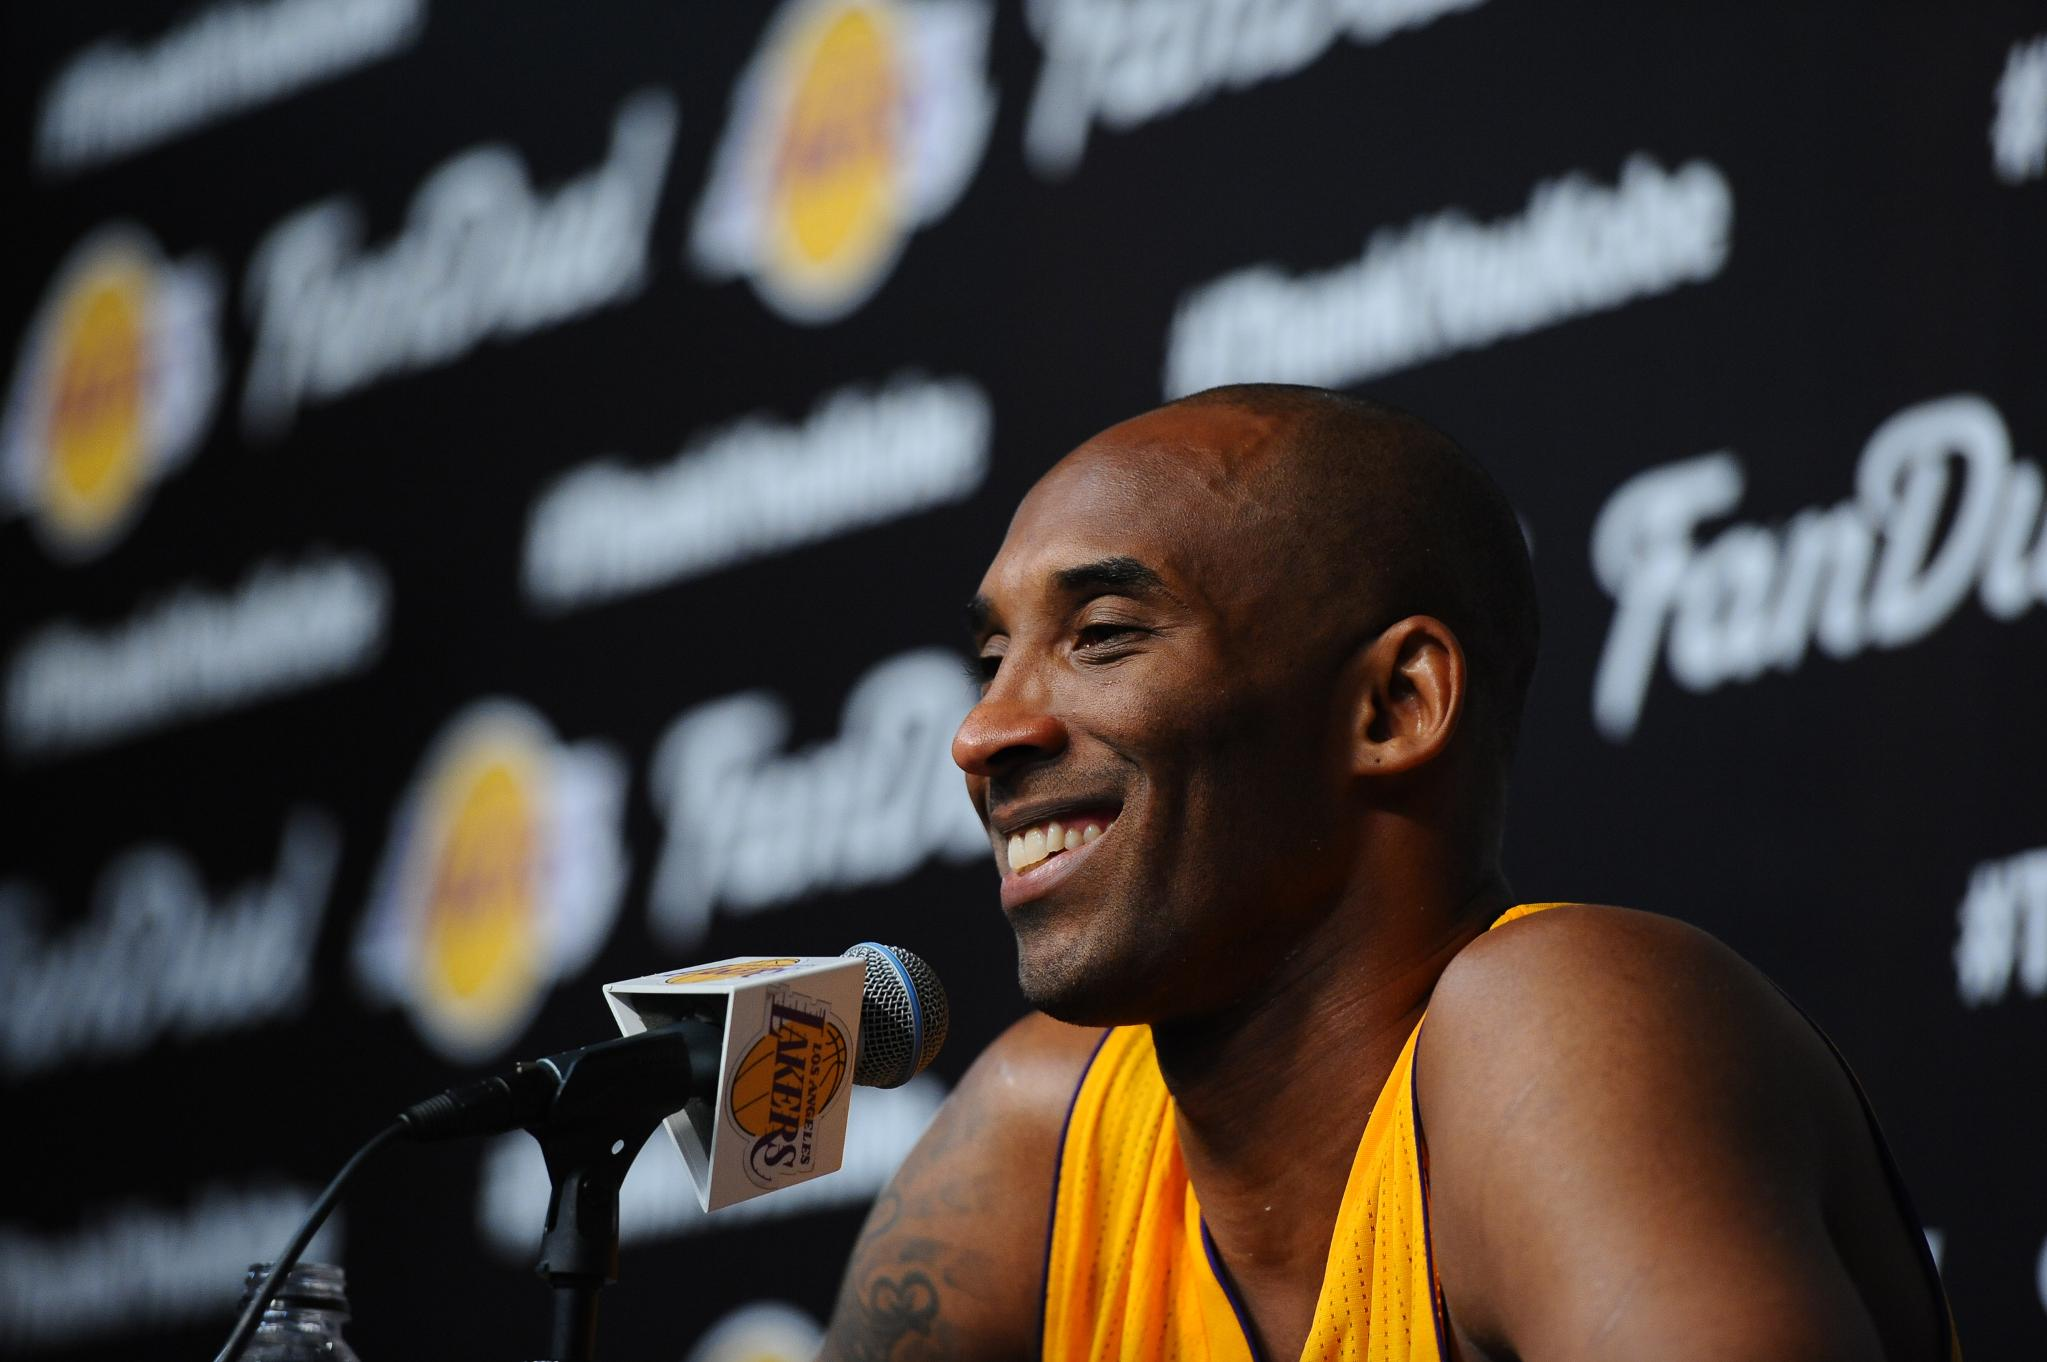 Report: @Lakers to retire both of @kobebryant's jersey numbers.  MORE: https://t.co/7mC59NDJHq https://t.co/ZVJrjNetZV